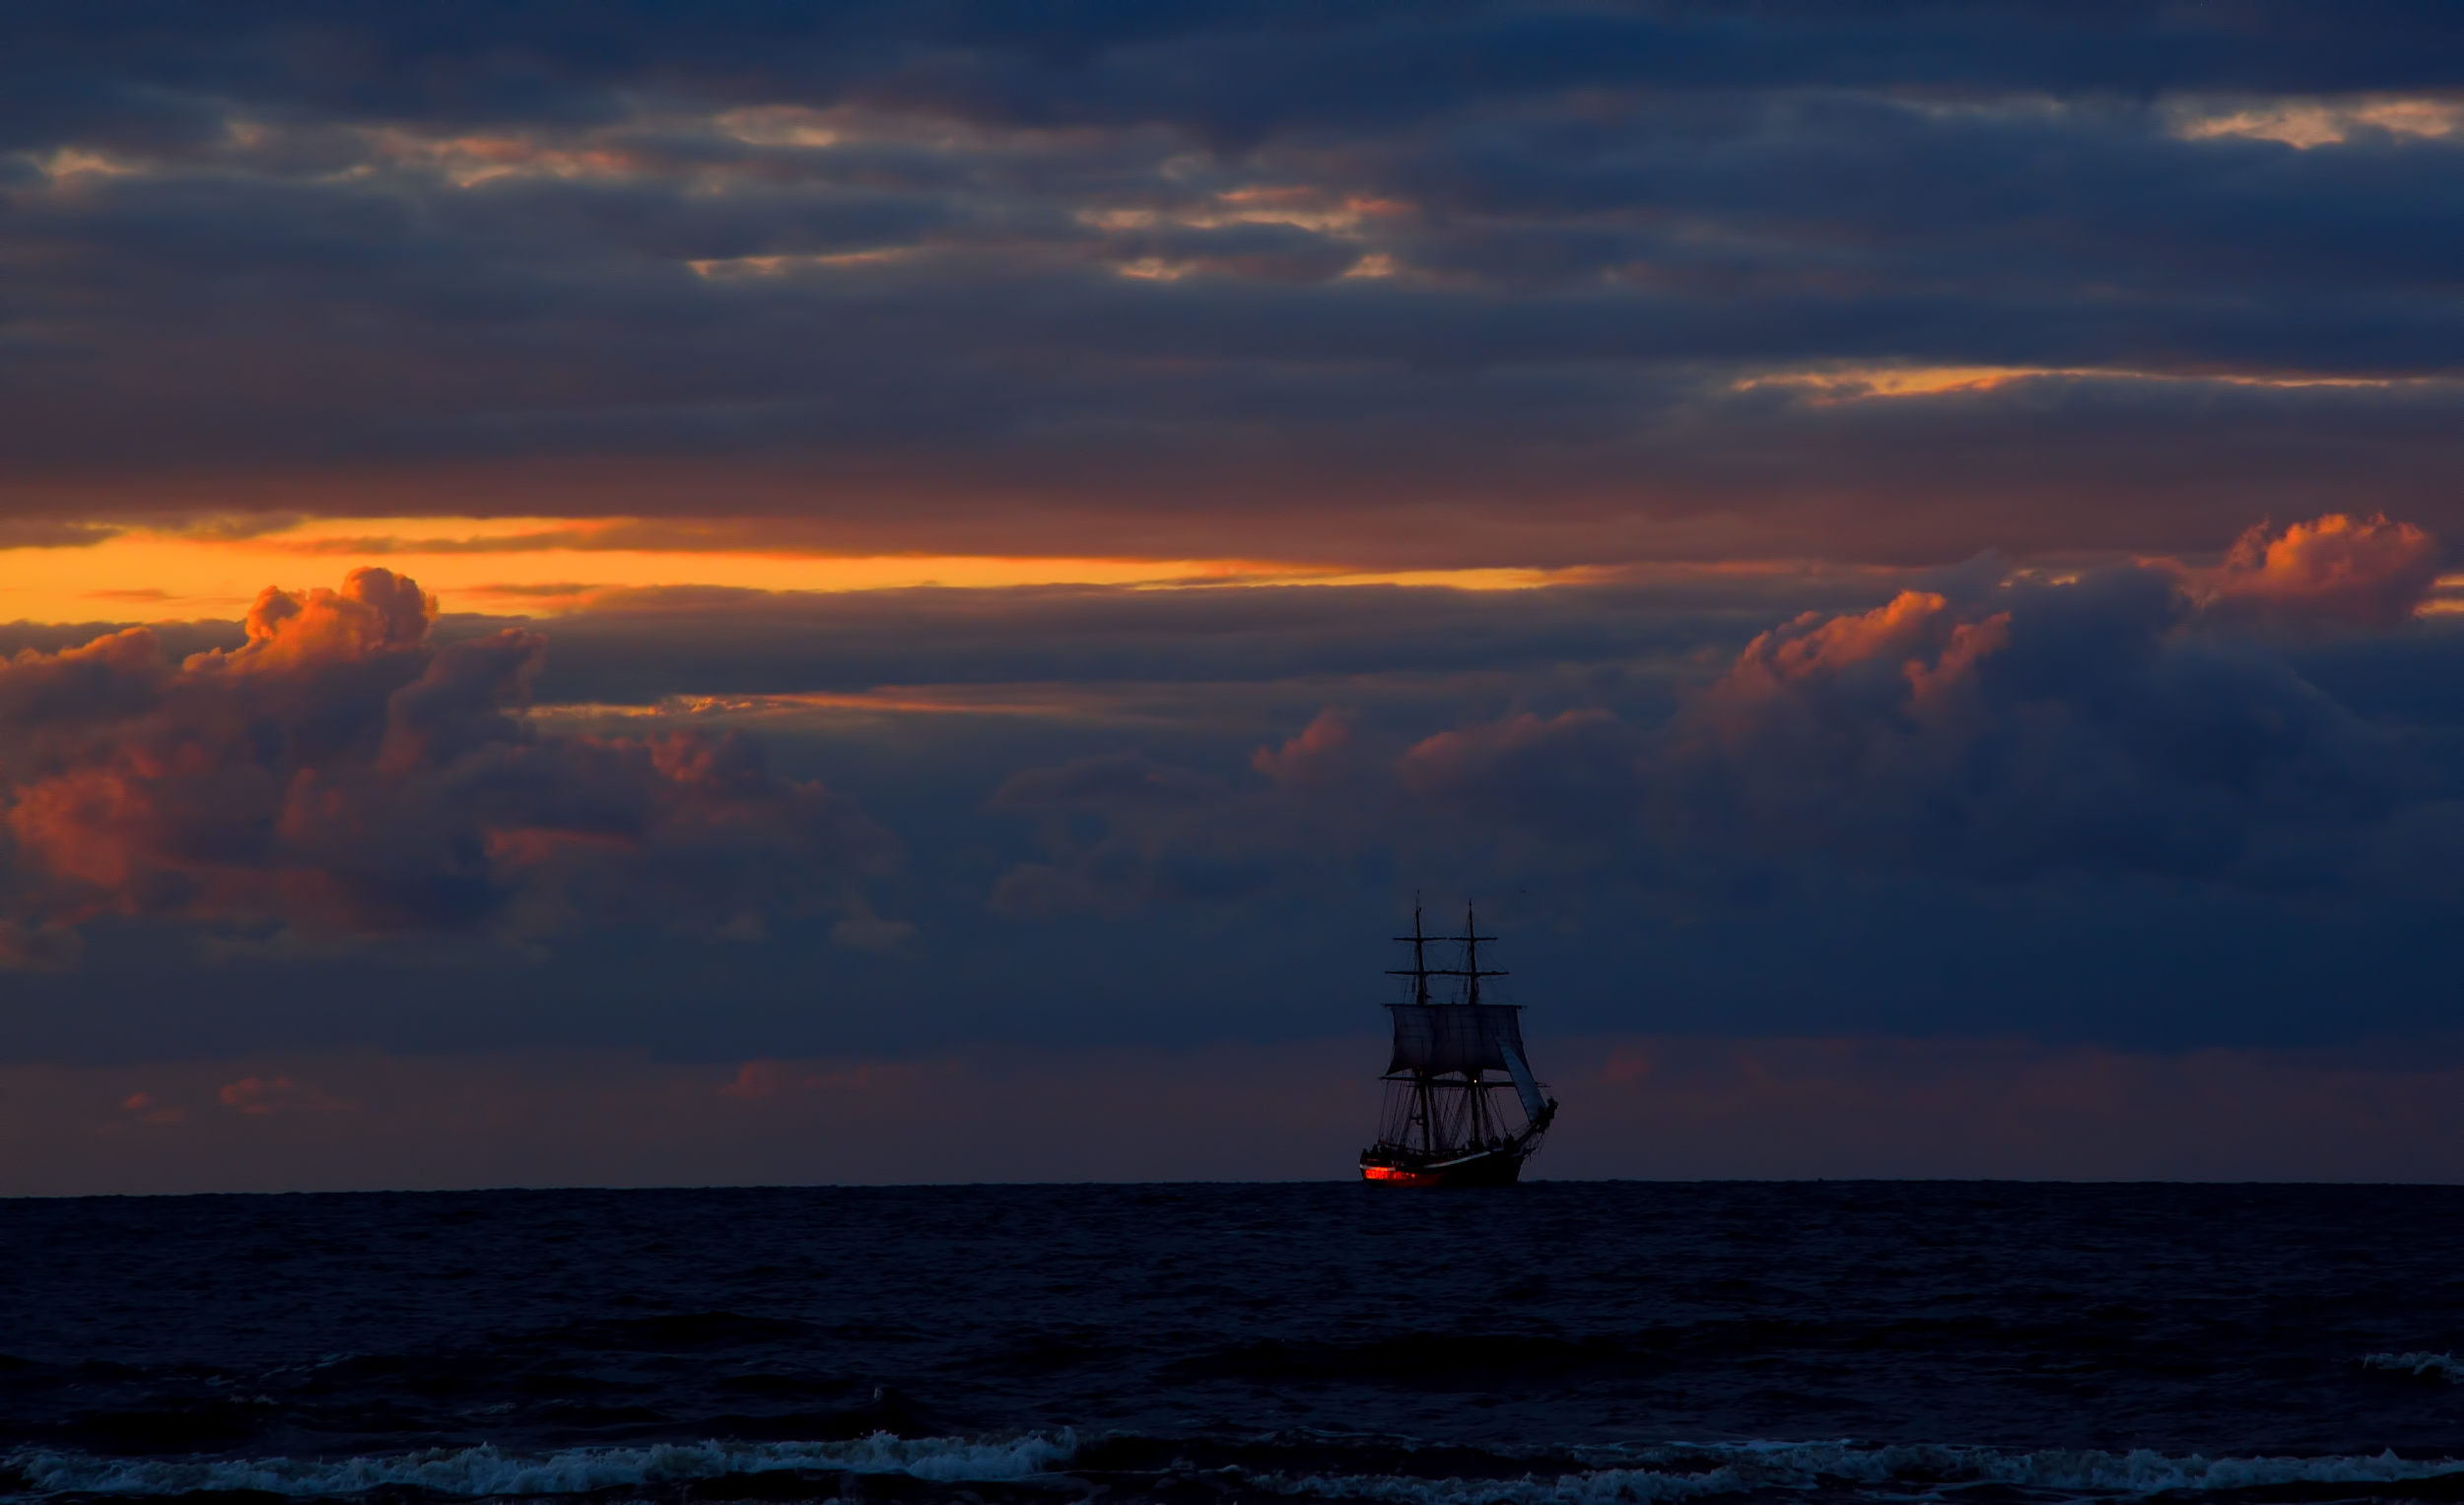 Żaglowiec, sailing boat, sailing, sunset, sunrise, dark